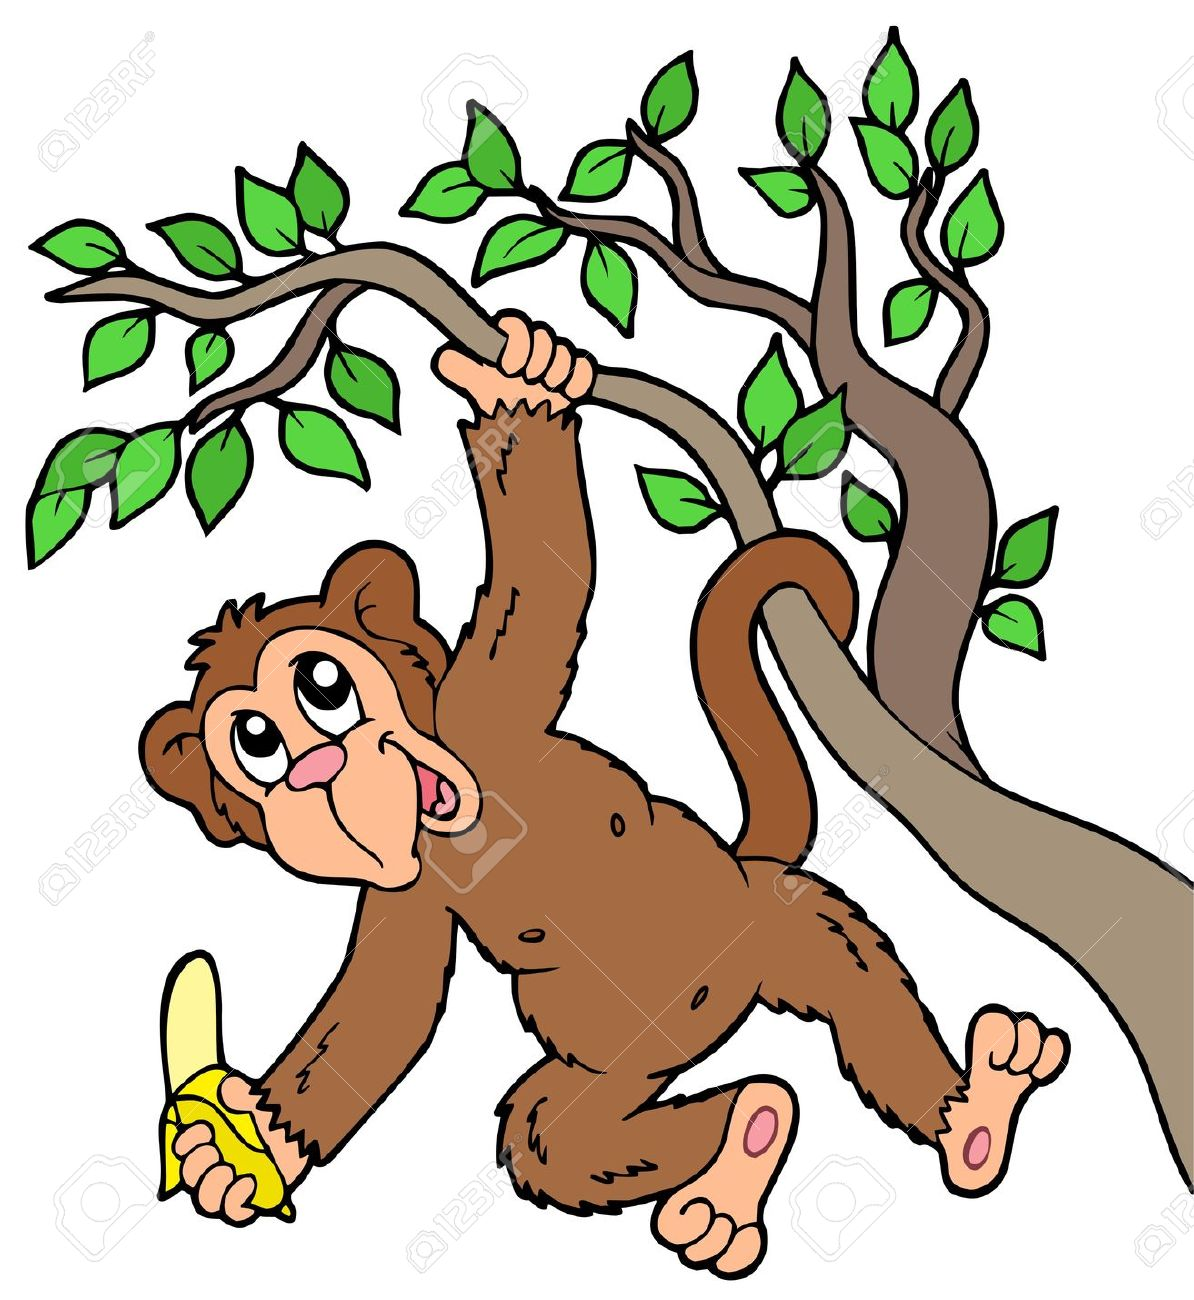 Food from trees clipart picture free Animals and the food they eat clipart - ClipartFest picture free